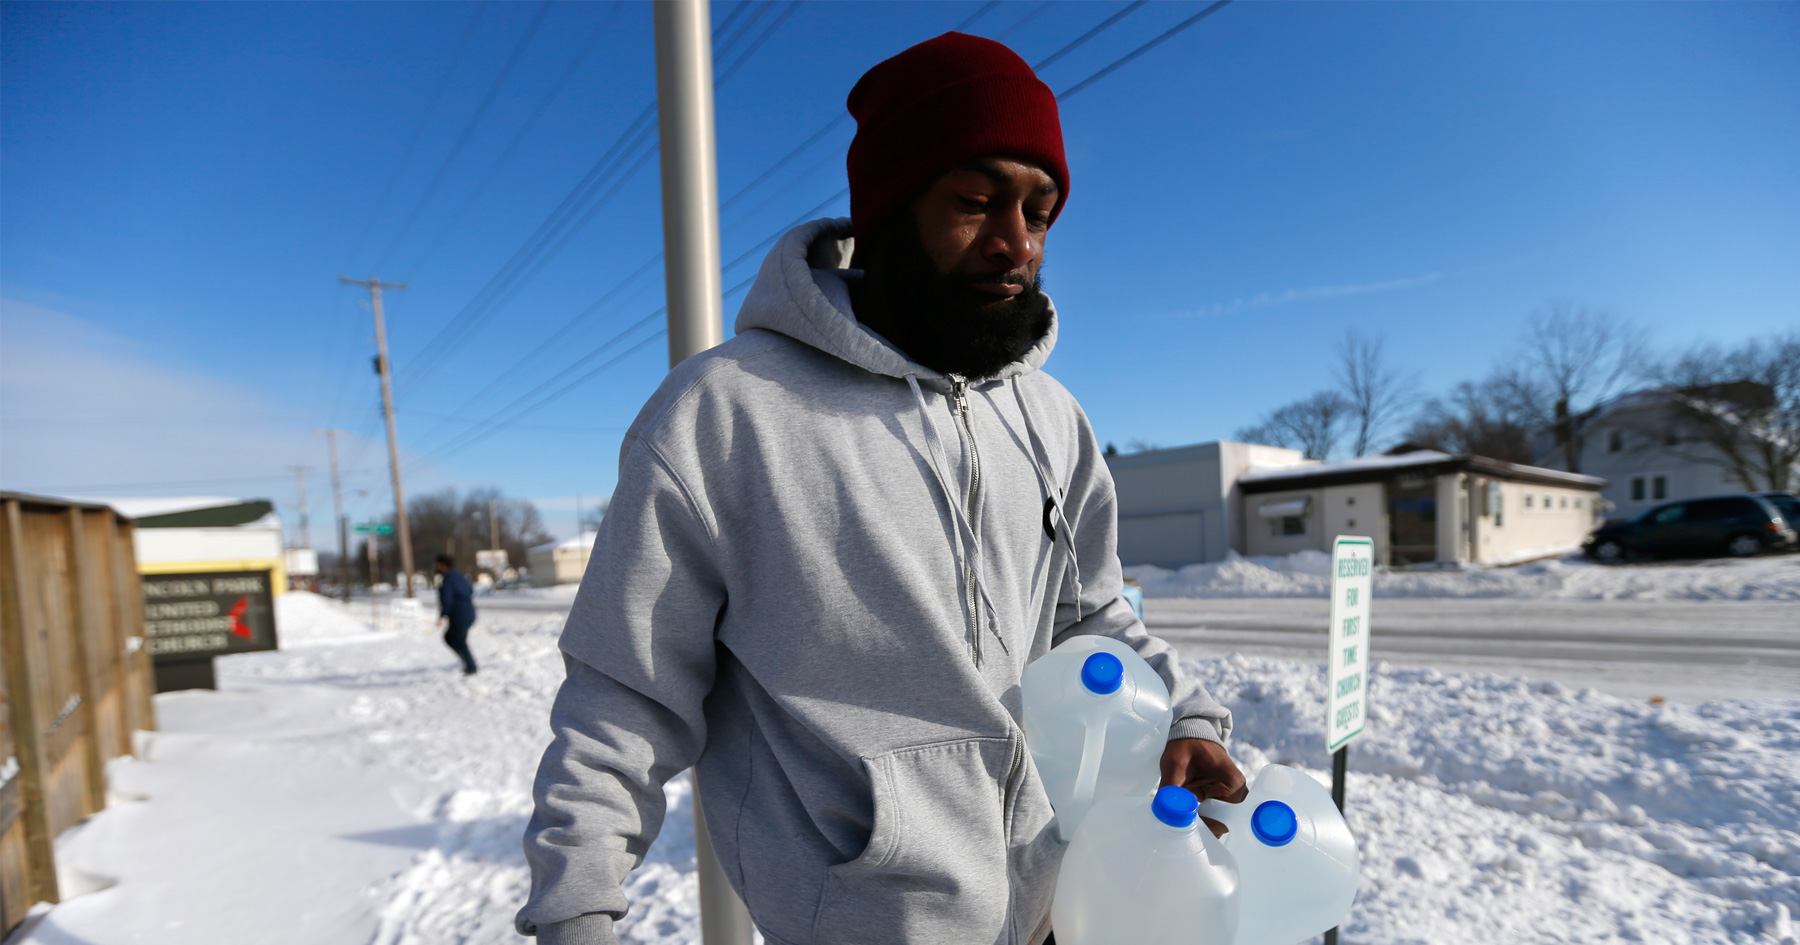 Photo of Flint water crisis: This is what austerity looks like